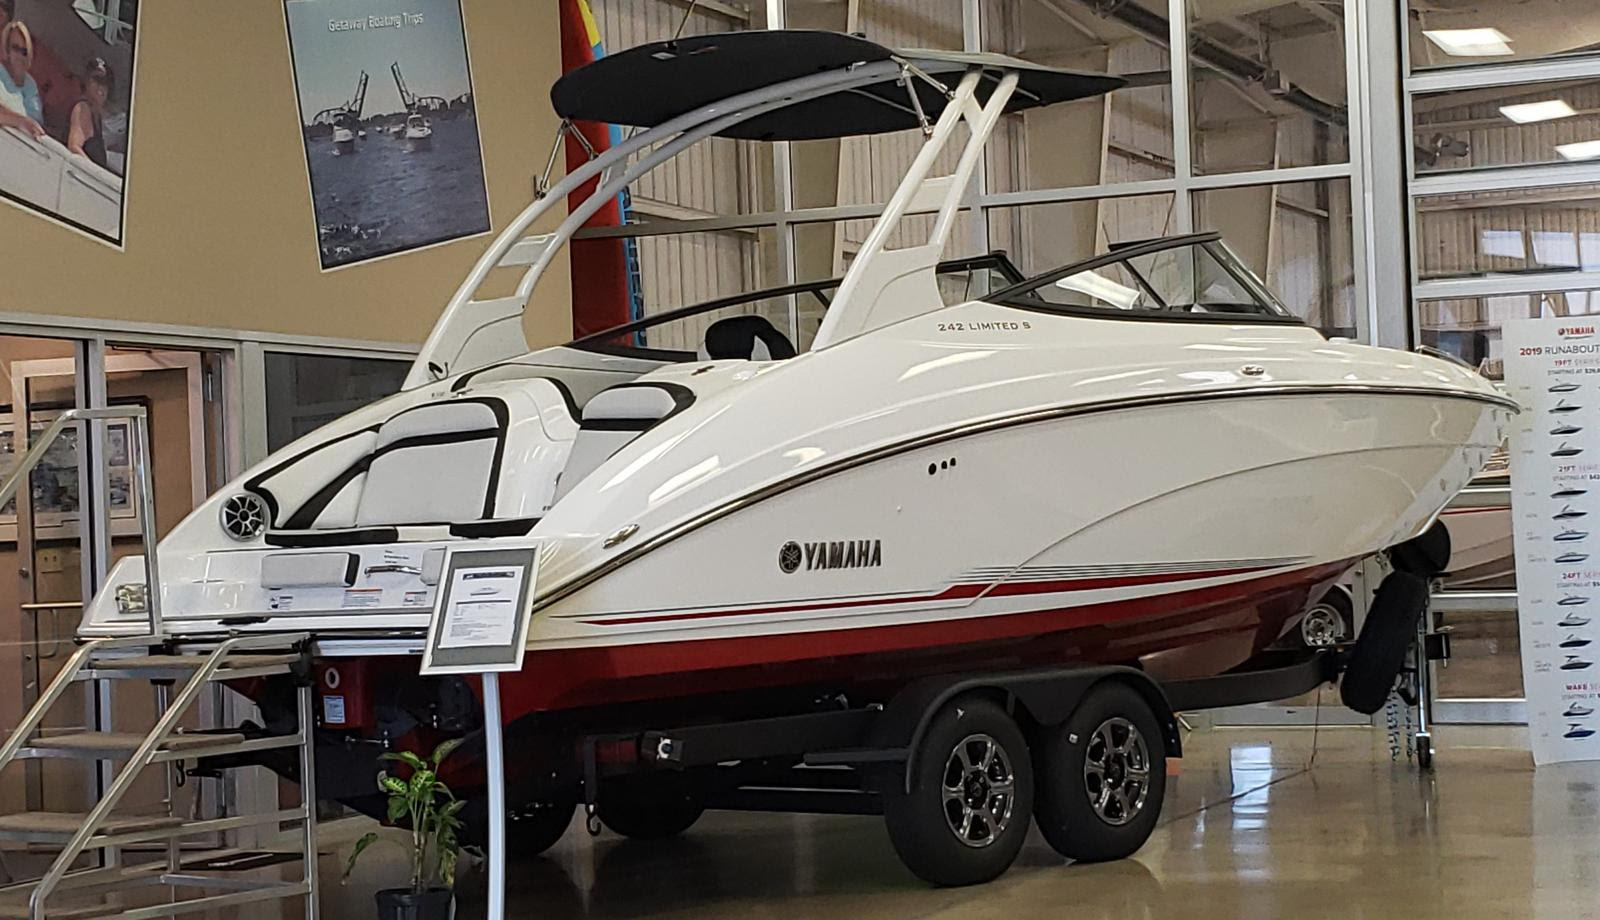 2019 Yamaha Boats 242 Limited S For Sale In Michigan City